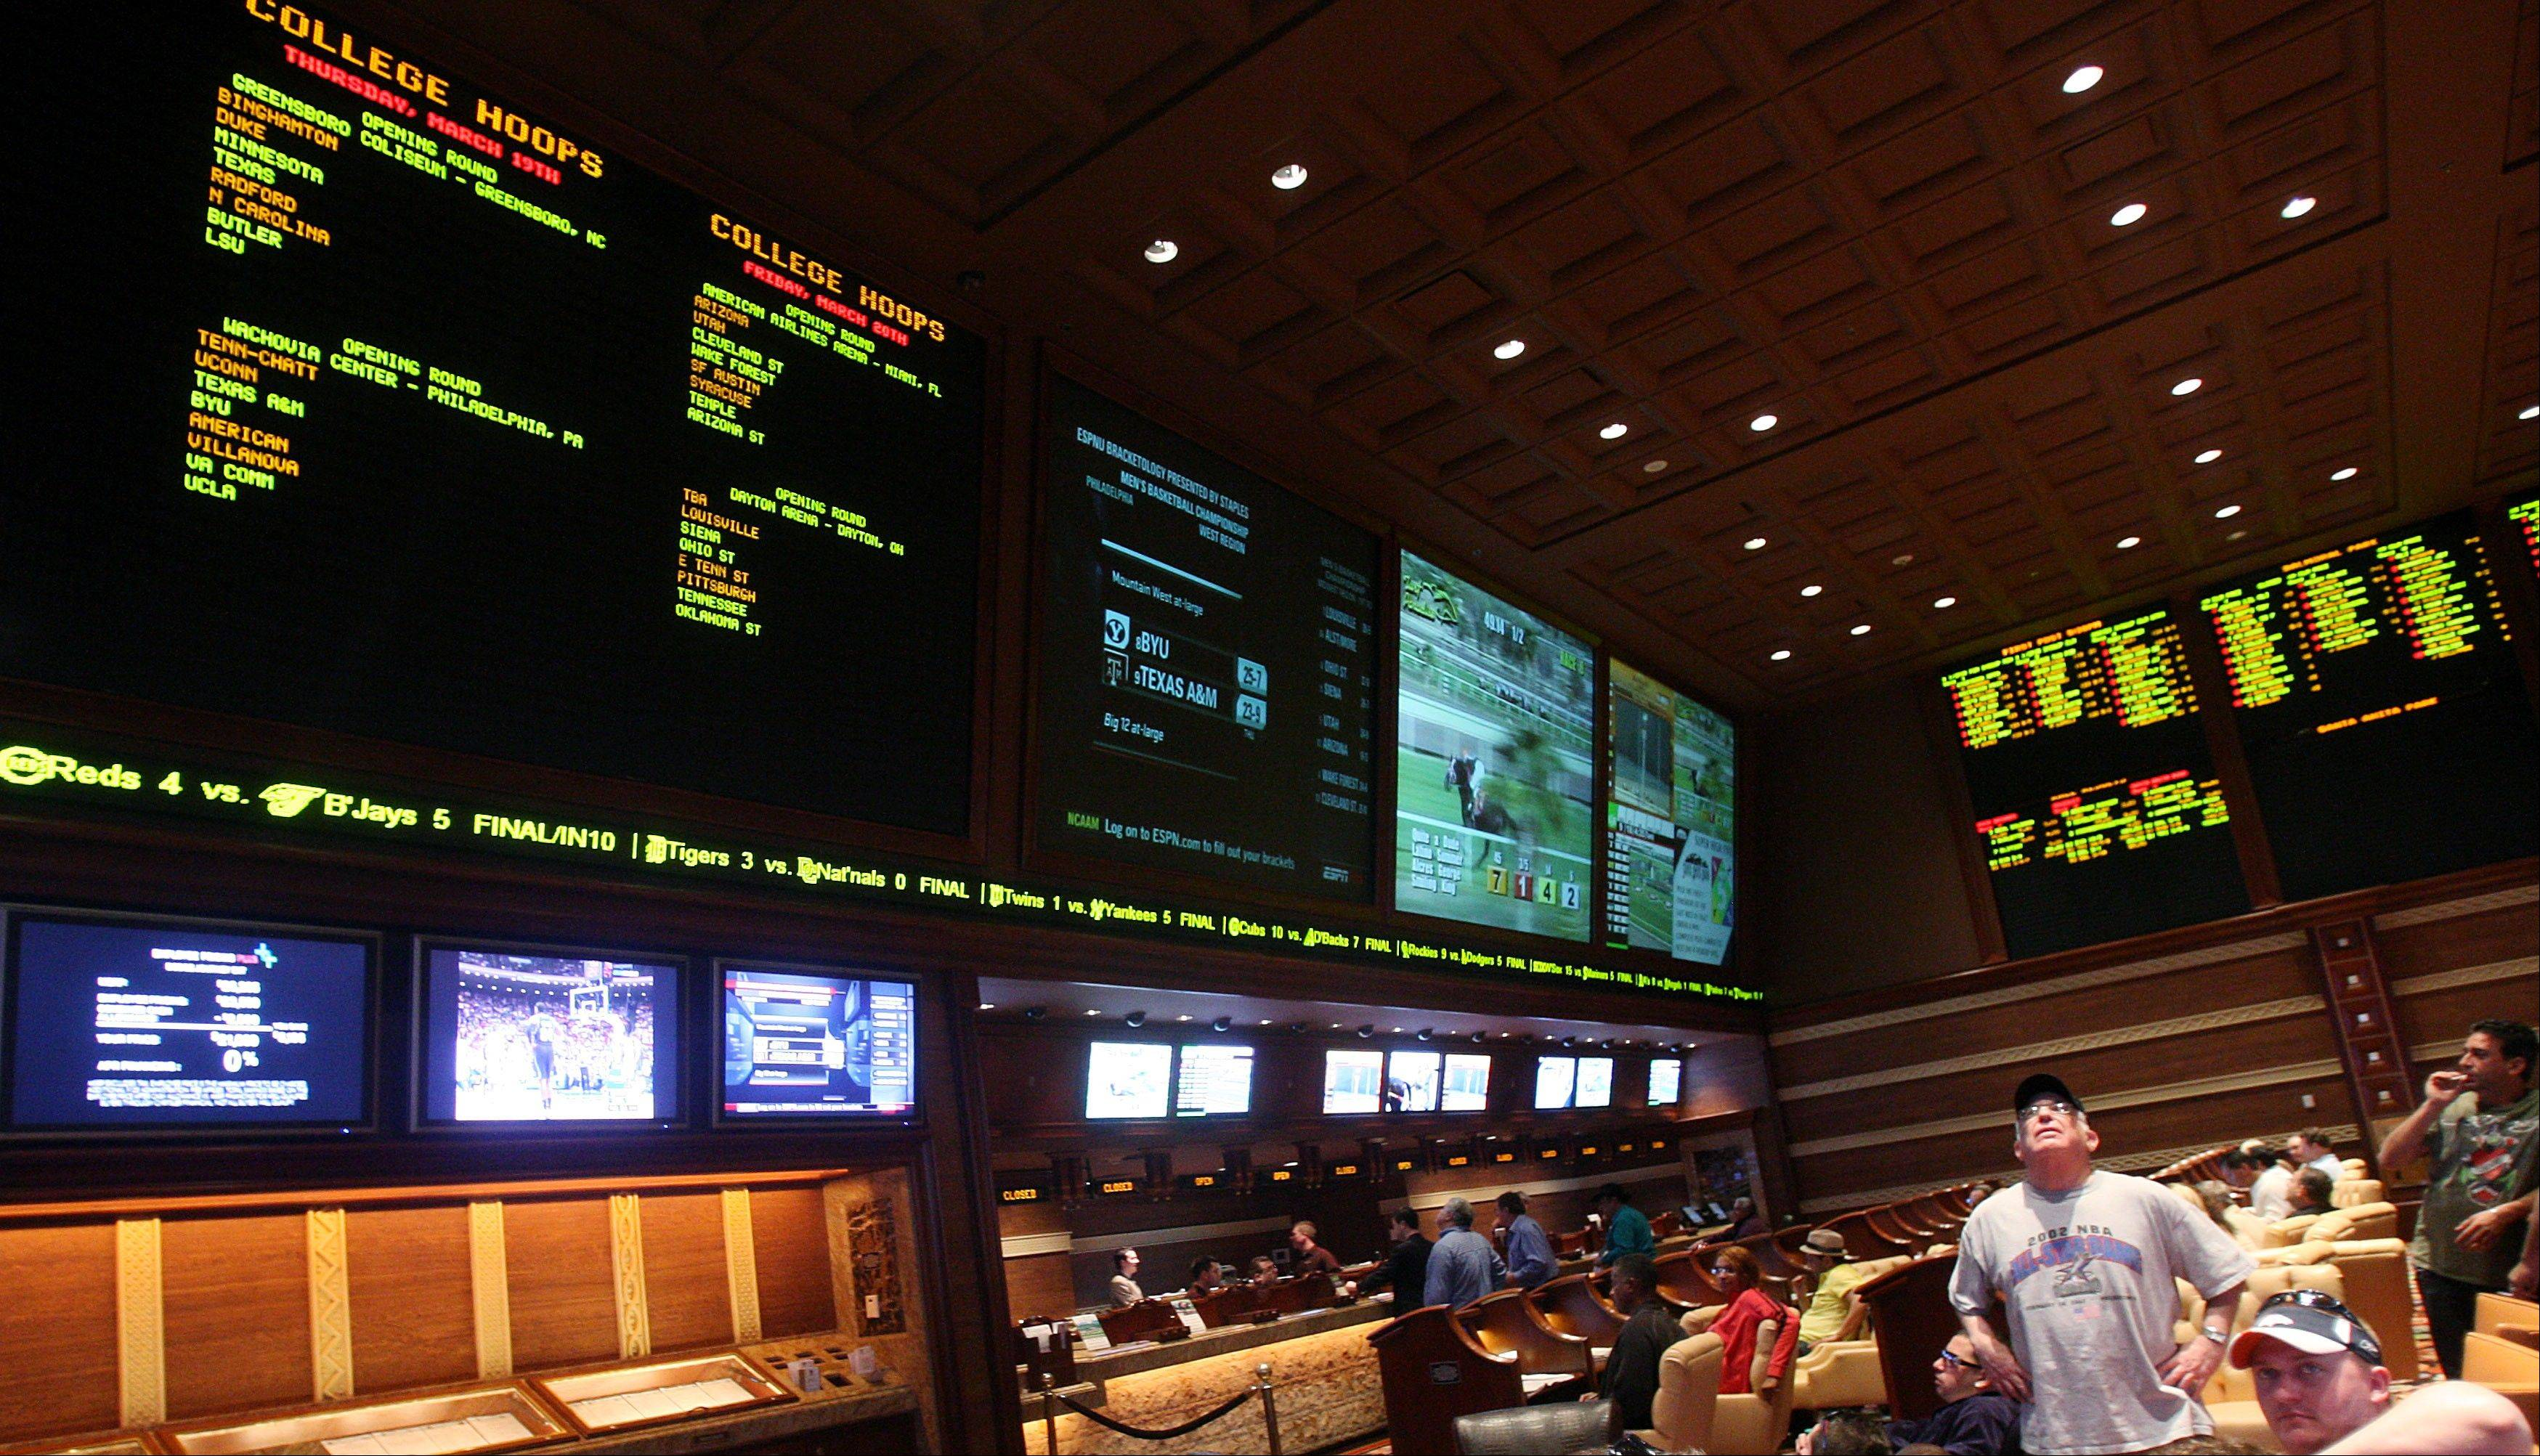 Sports bettors watch the screens in the race and sports book at Wynn Las Vegas, in this March 15, 2009 file photo taken in Las Vegas. Las Vegas casinos think this weekend's NFL week three 2012 games will be the highest-scoring ever -- and that you can thank the league's replacement officials.